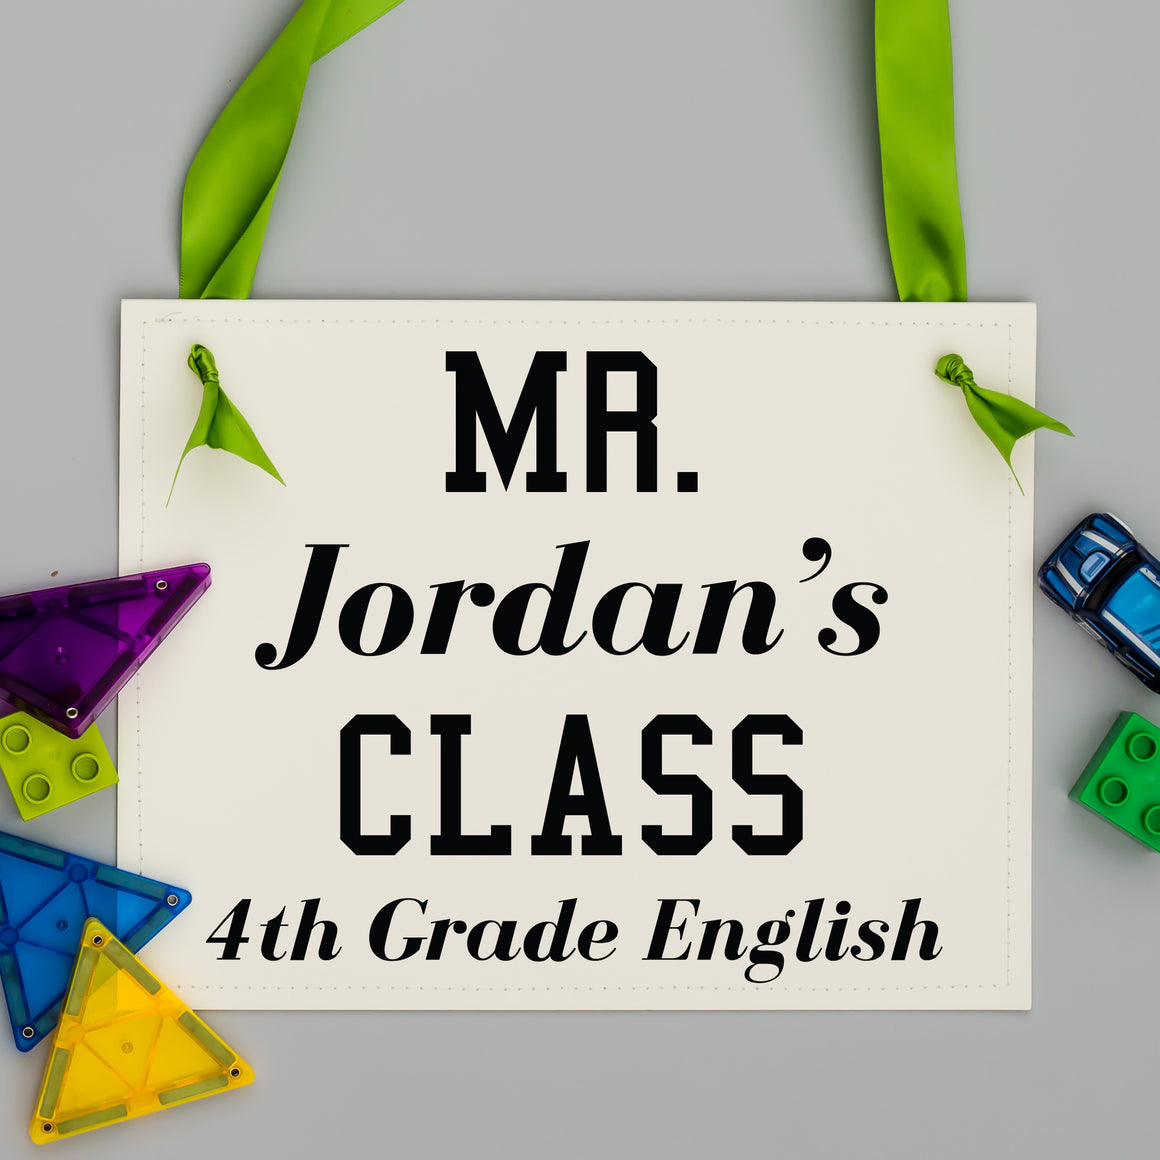 Personalized Teacher's Classroom Sign